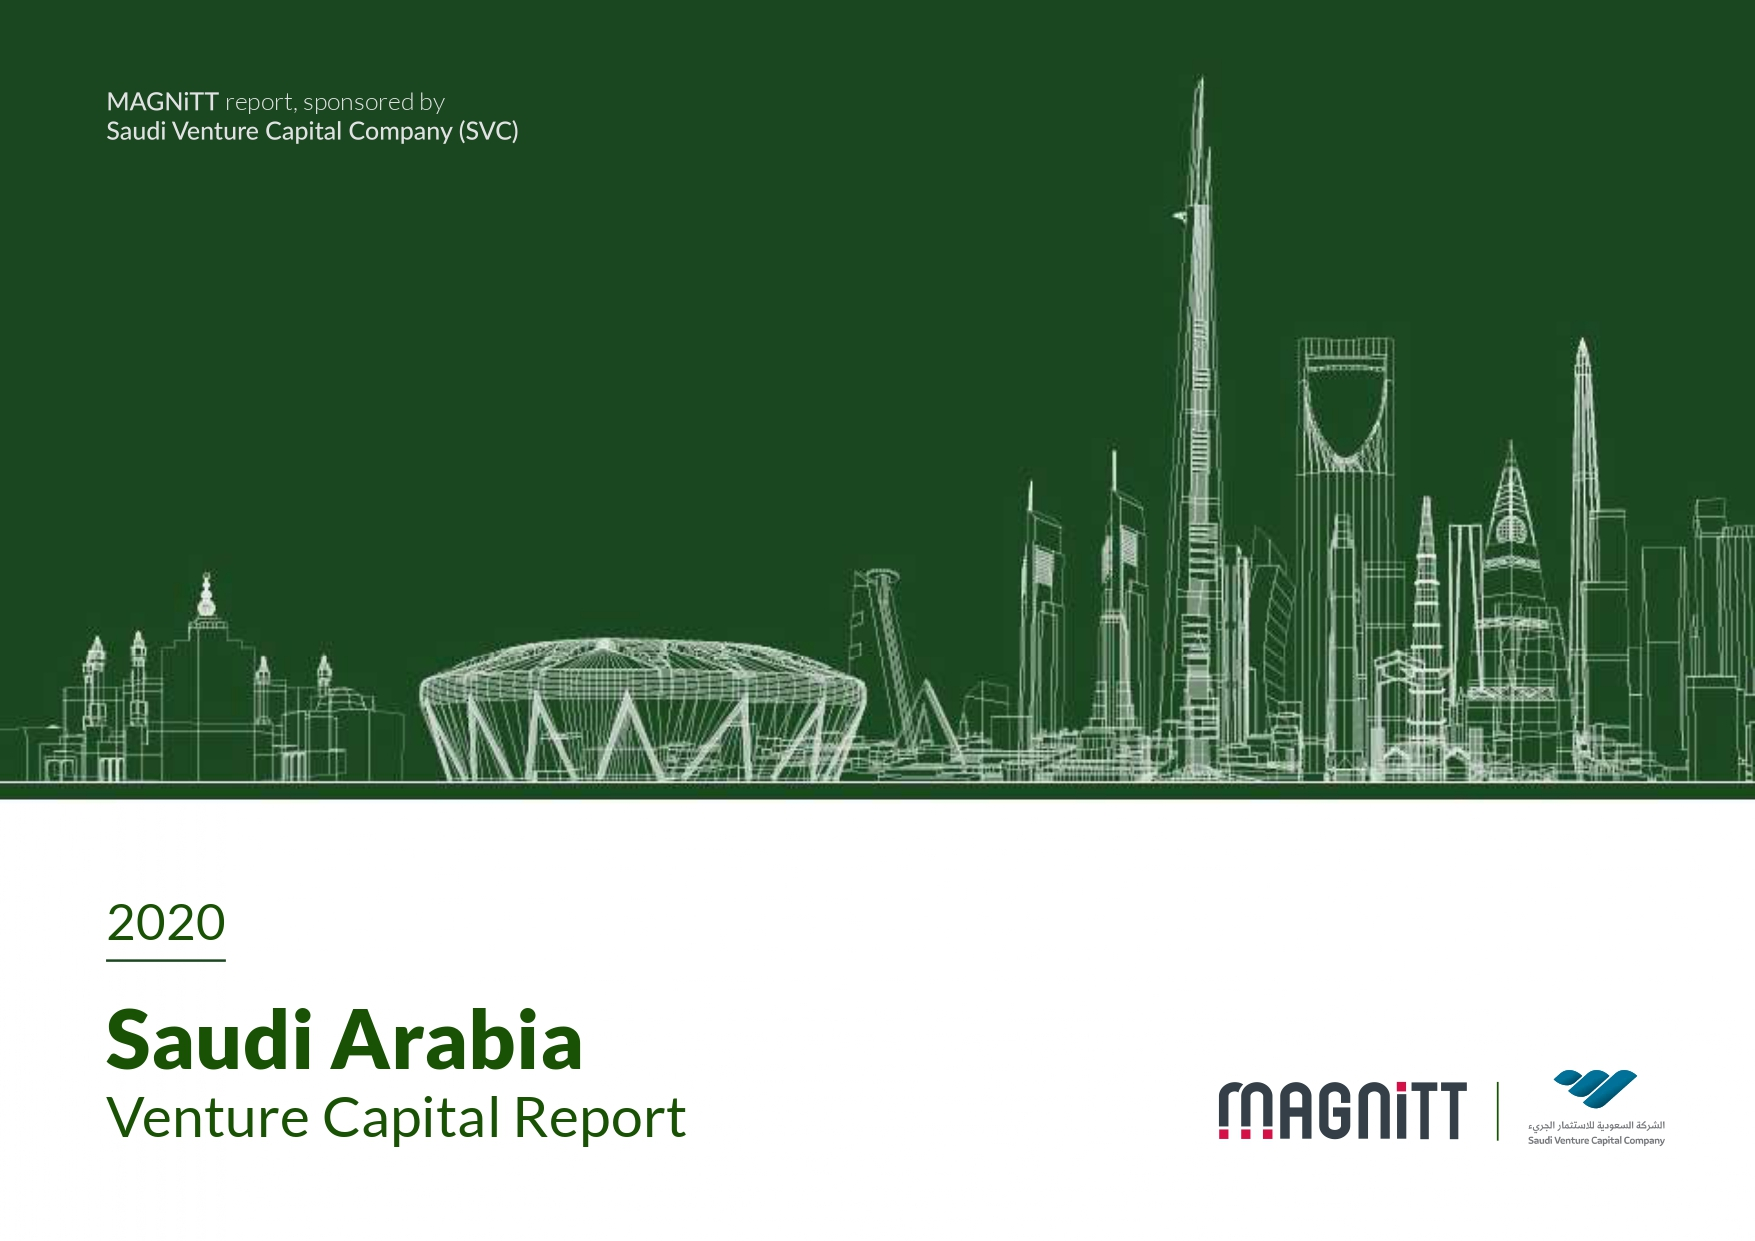 Saudi Arabia Venture Capital Report 2020